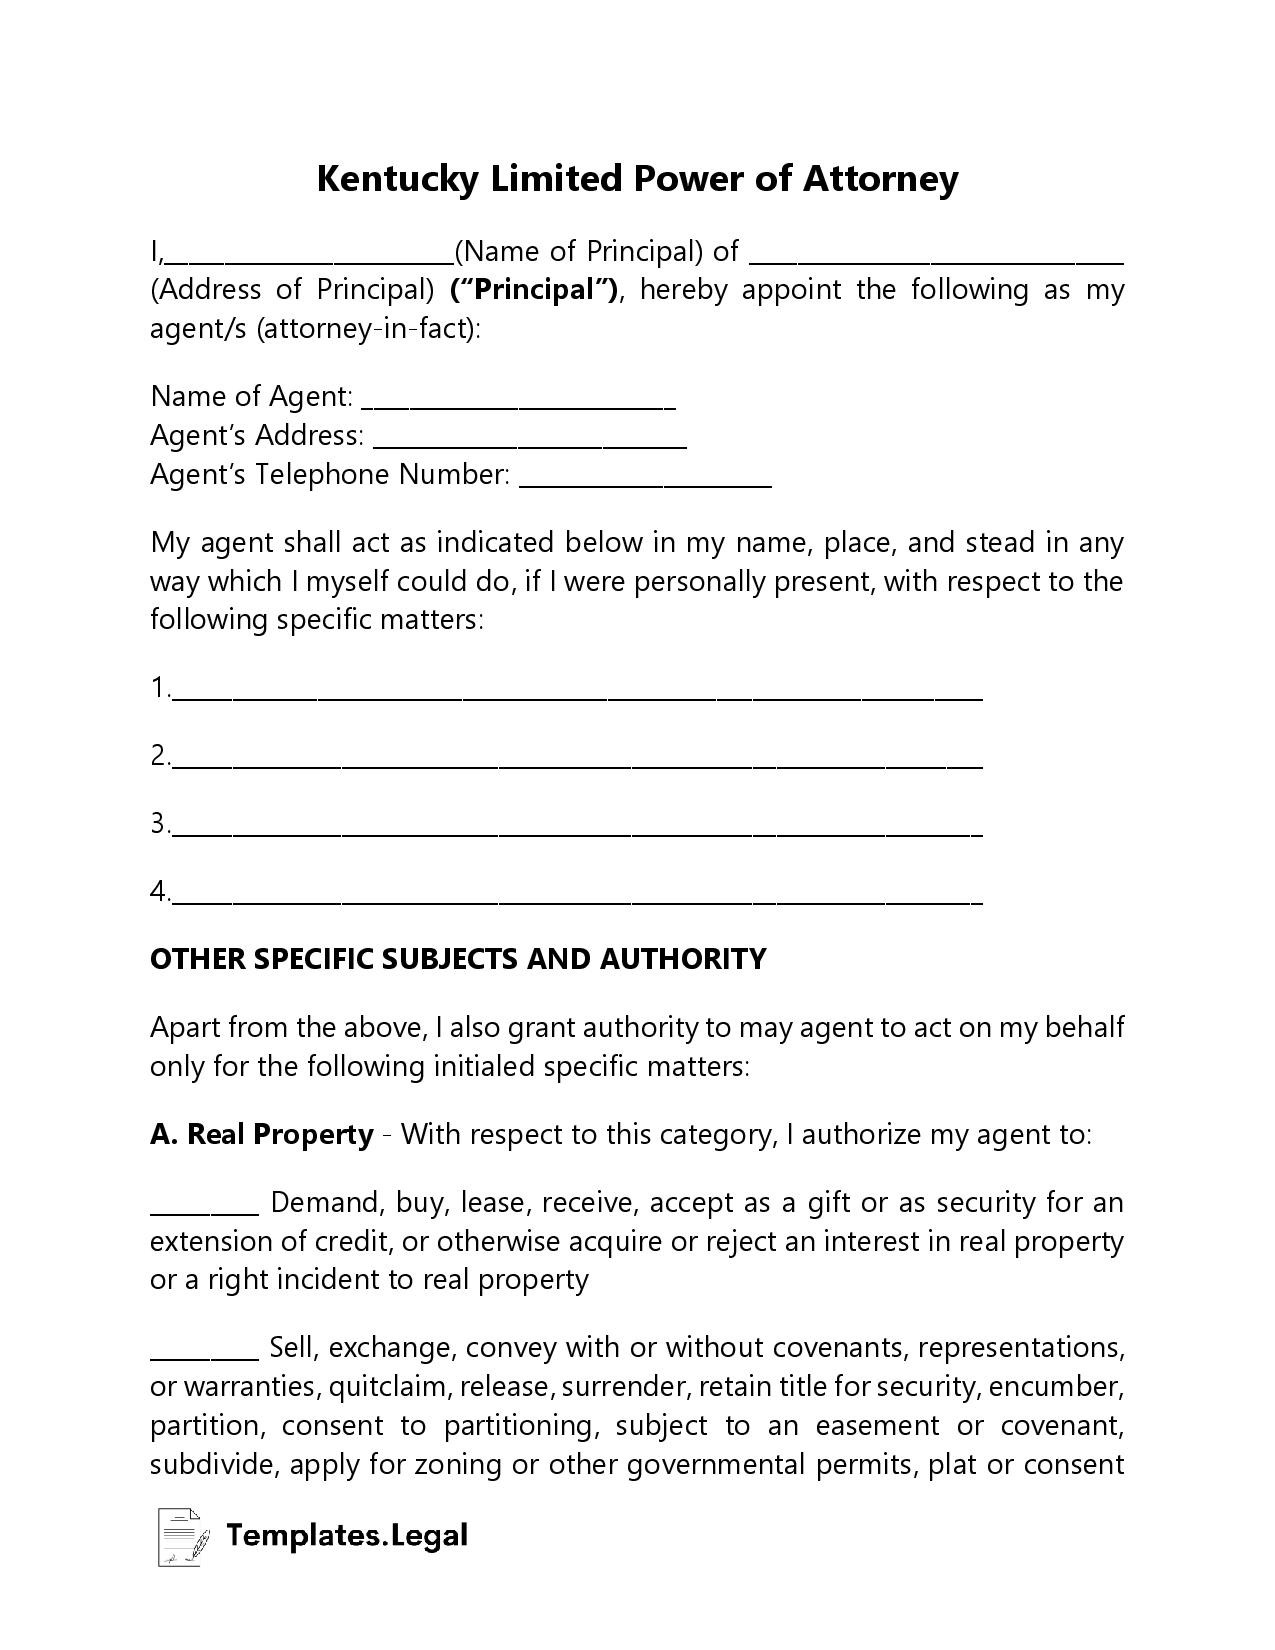 Kentucky Limited Power of Attorney - Templates.Legal